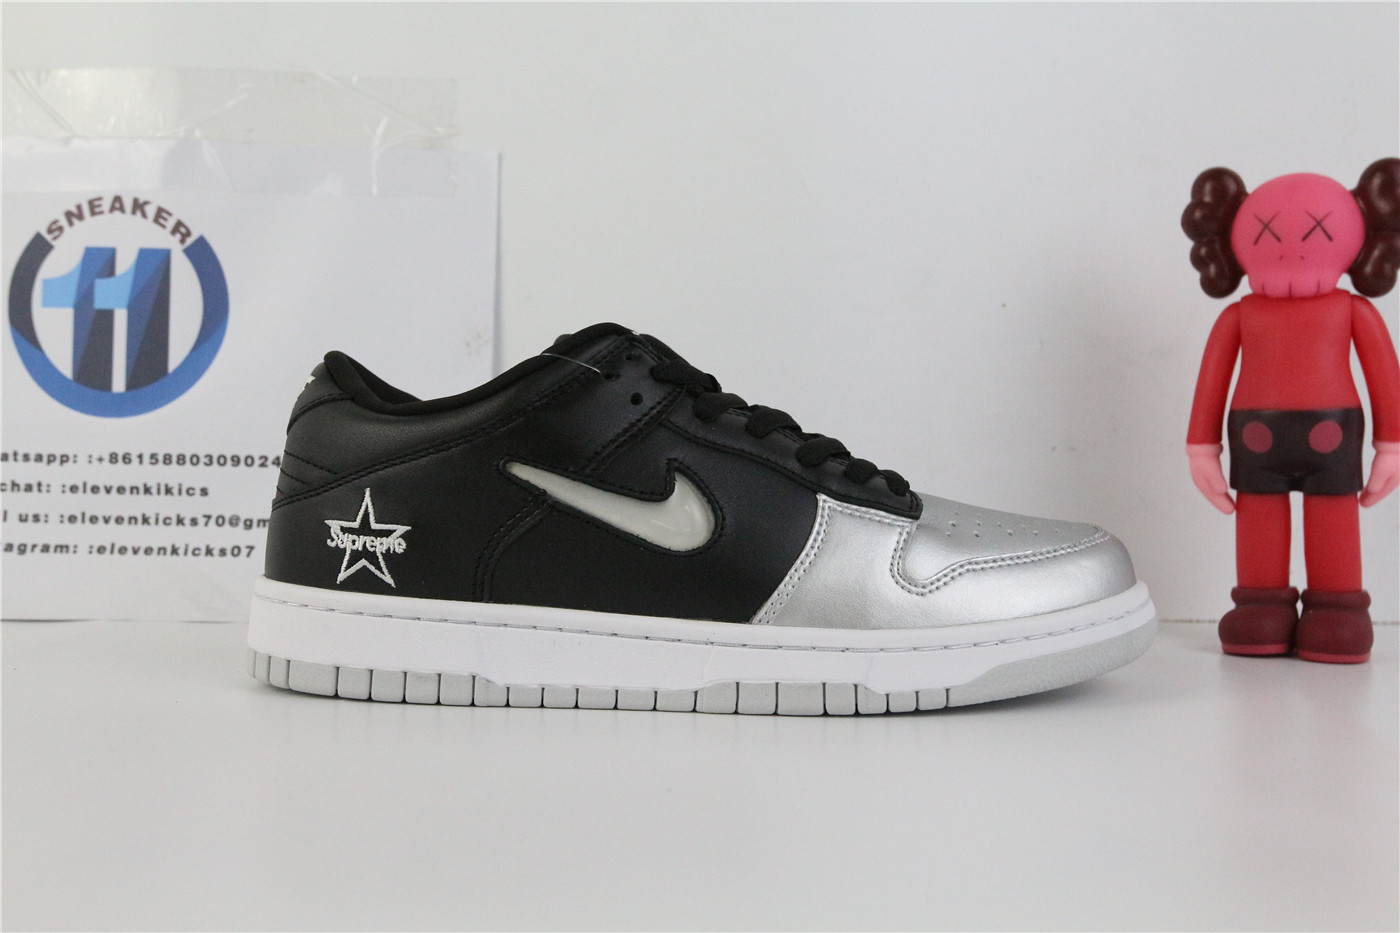 Supreme X Nike SB Dunk Low Black Metallic Silver